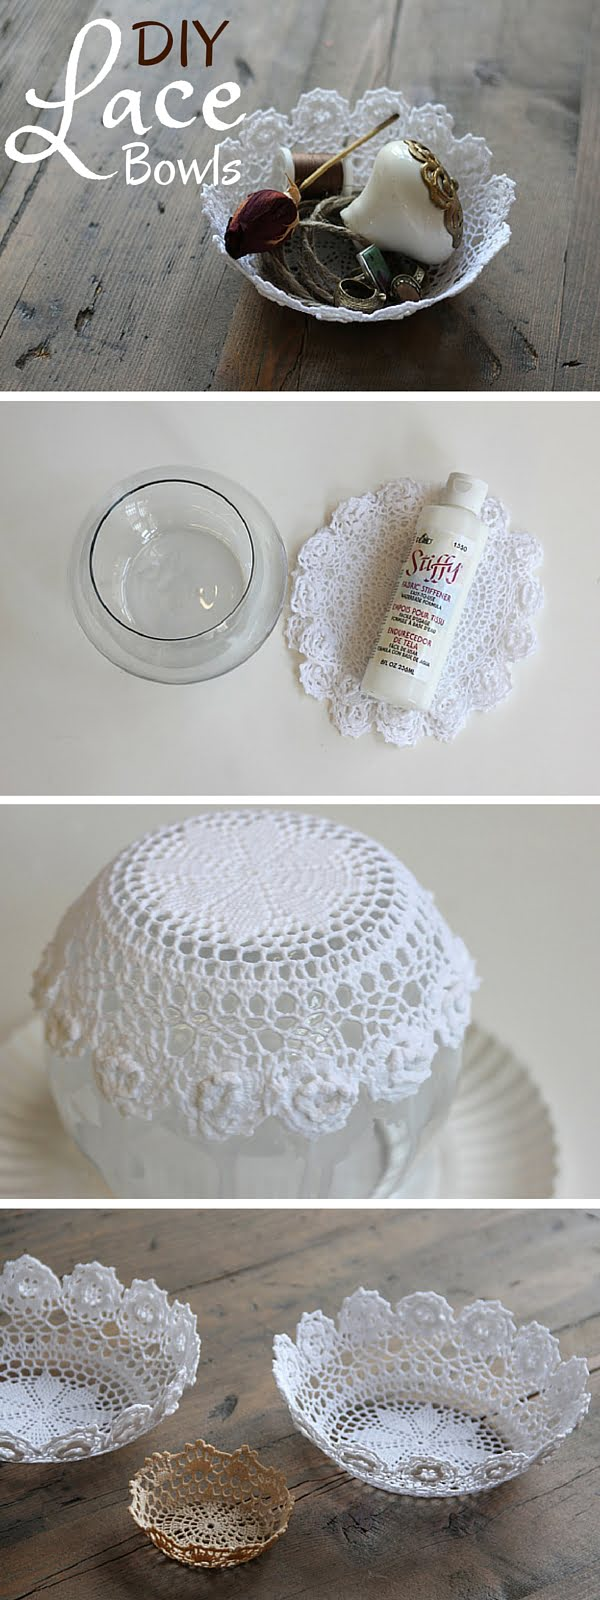 Check out the tutorial:  Lace Bowls